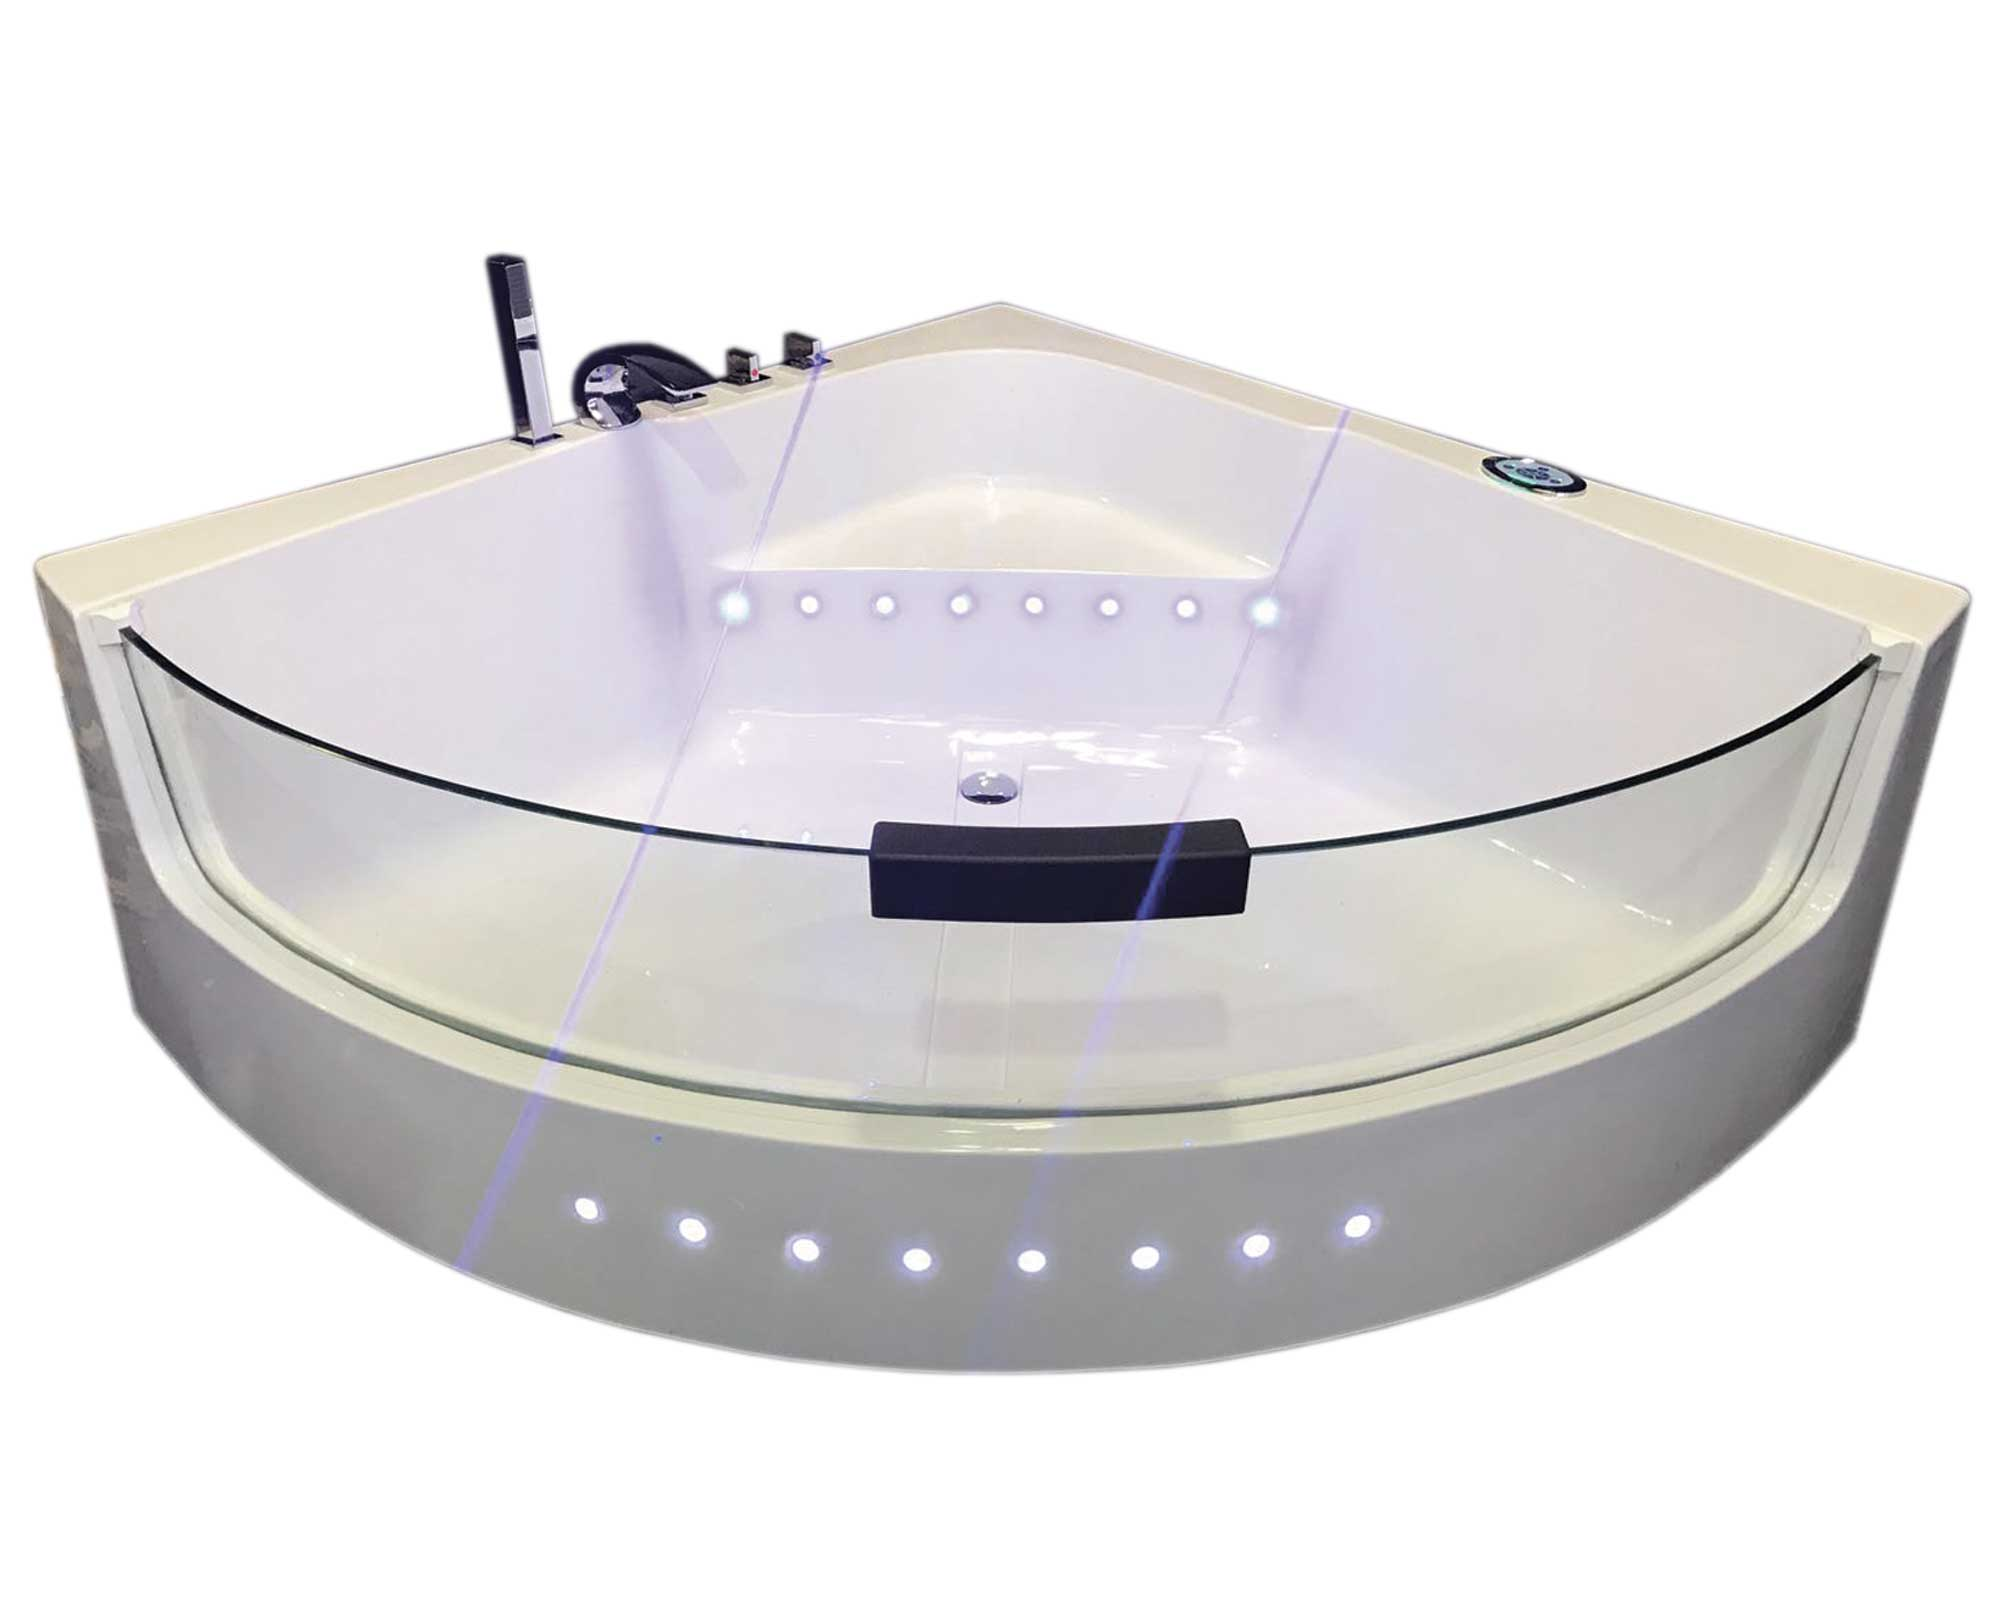 WHIRLPOOL BATH TUB SPA White Shark CORNER BATH BATHTUB HOT TUB 140 x ...